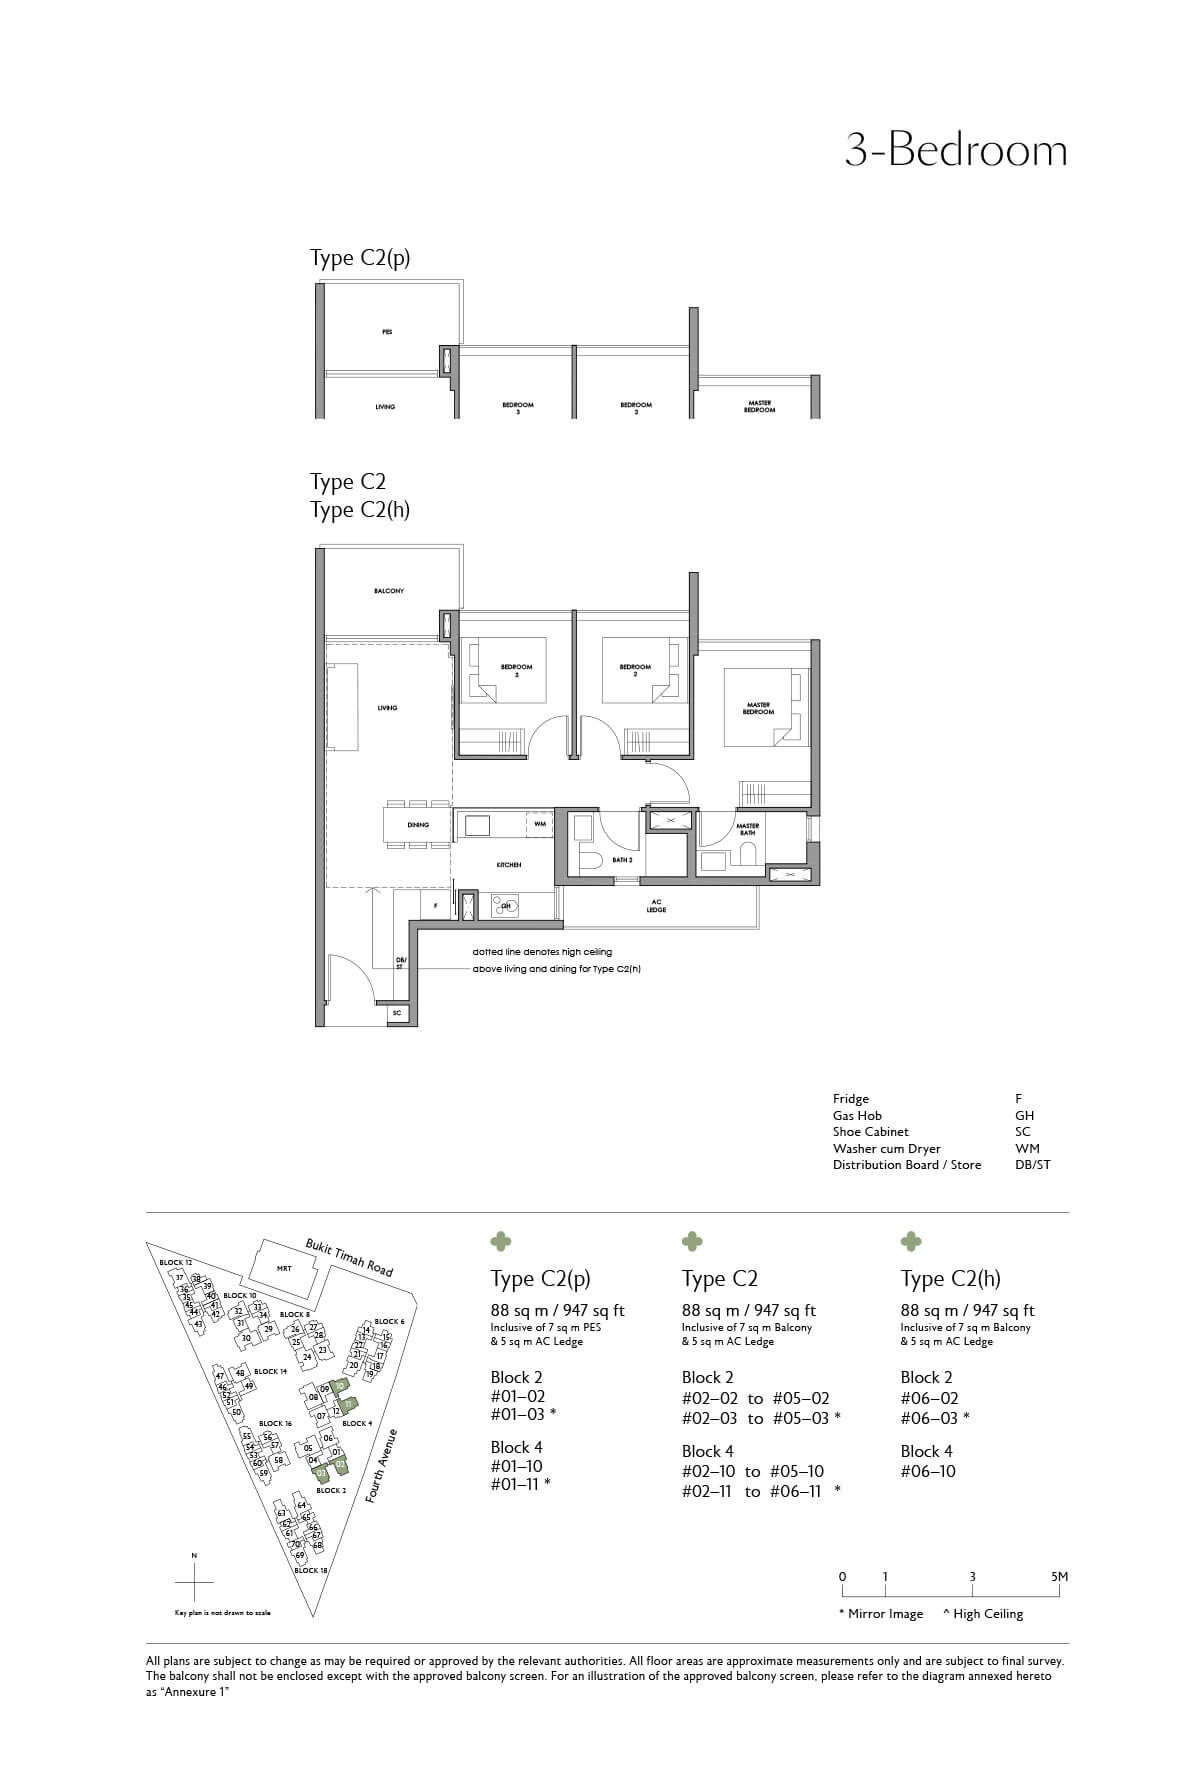 Fourth Avenue Residences Floor Plan 3 Bedroom Type C2